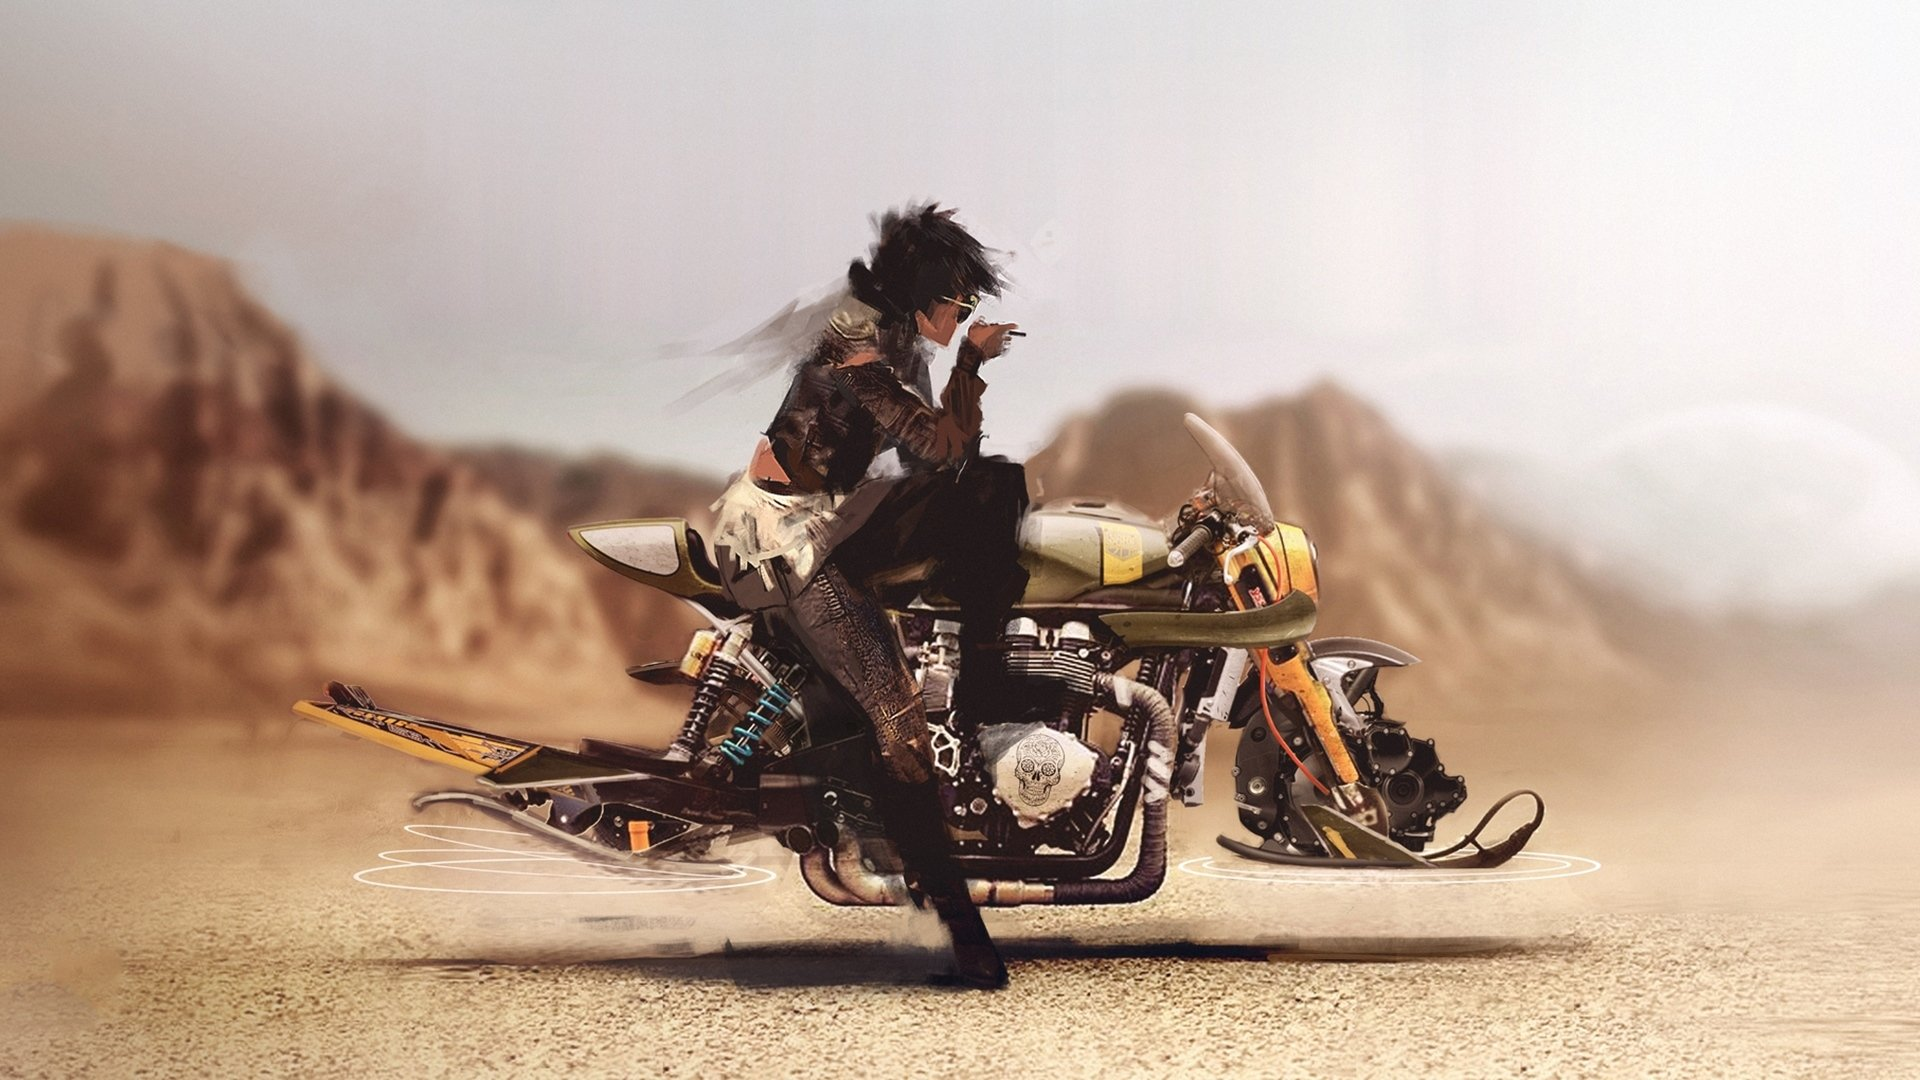 3 Beyond Good Evil 2 Hd Wallpapers Background Images